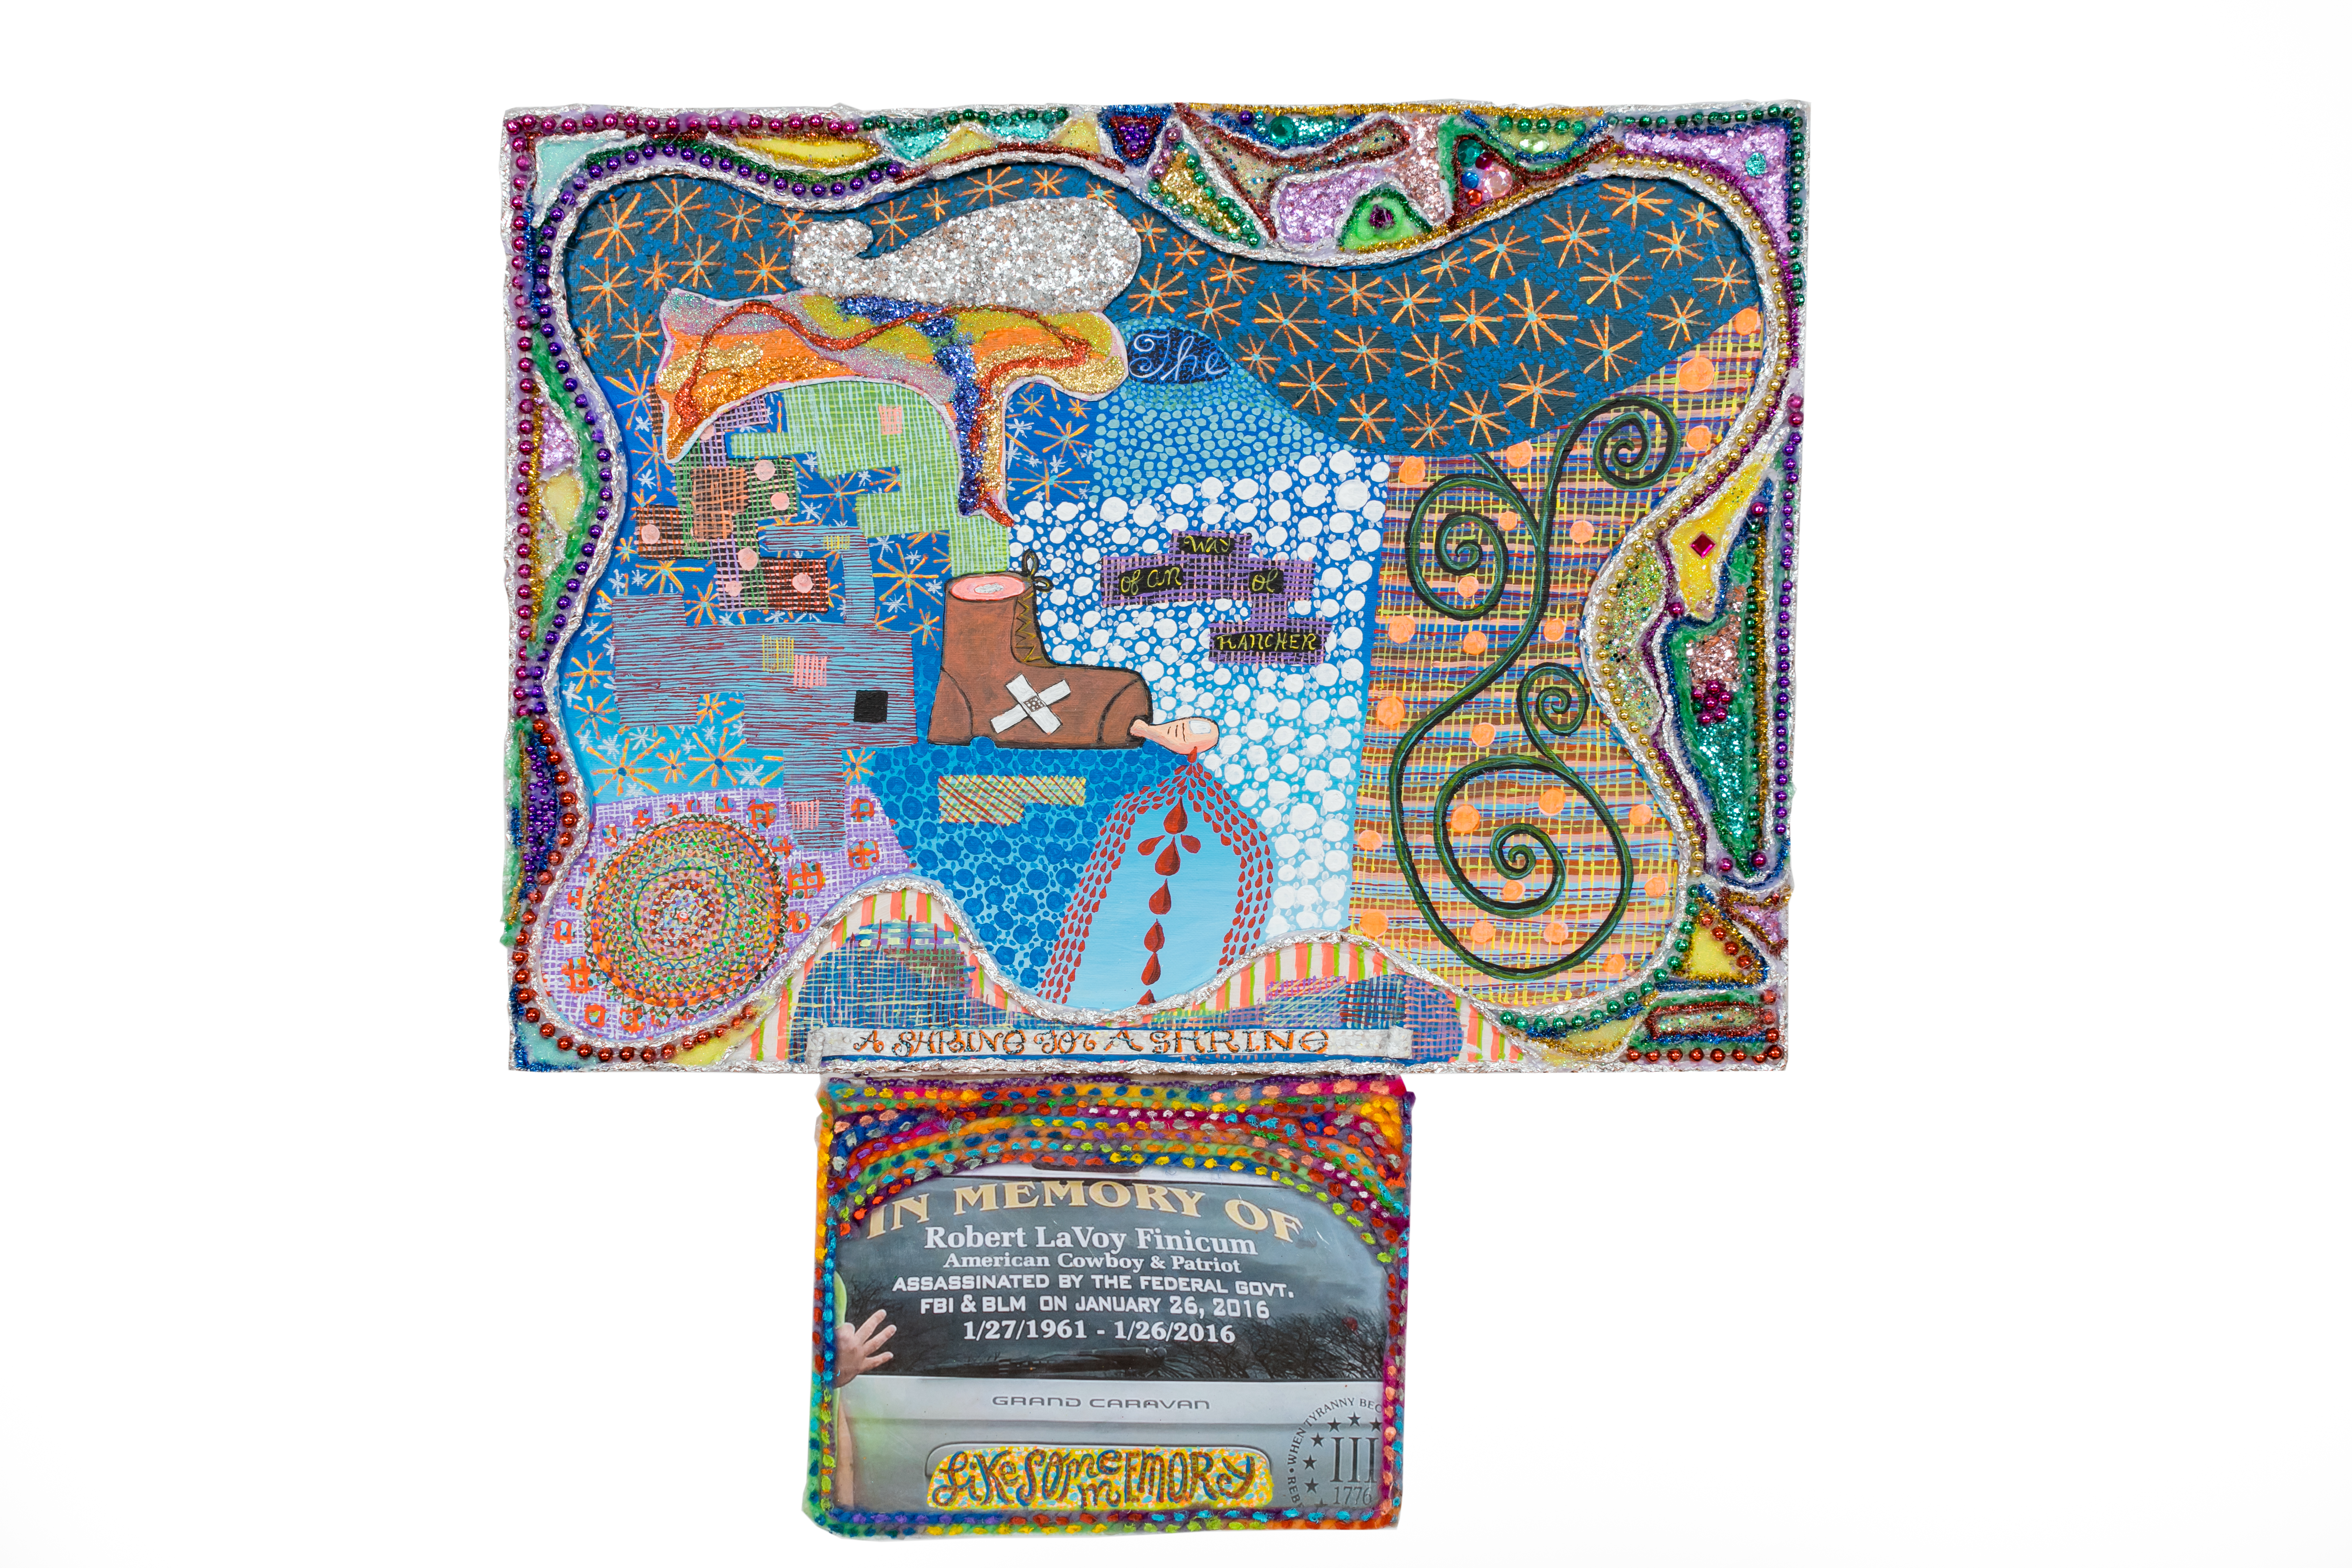 """The words """"A Shrine for a Shrine"""" are painted onto the bottom of a canvas, which combines dizzying patterns of multi-colored paint, multiple glued materials, such as beads and tin foil, as well as a photo of the back of a car, the window of which reads """"In Memory Of Robert LaVoy Finicum."""""""